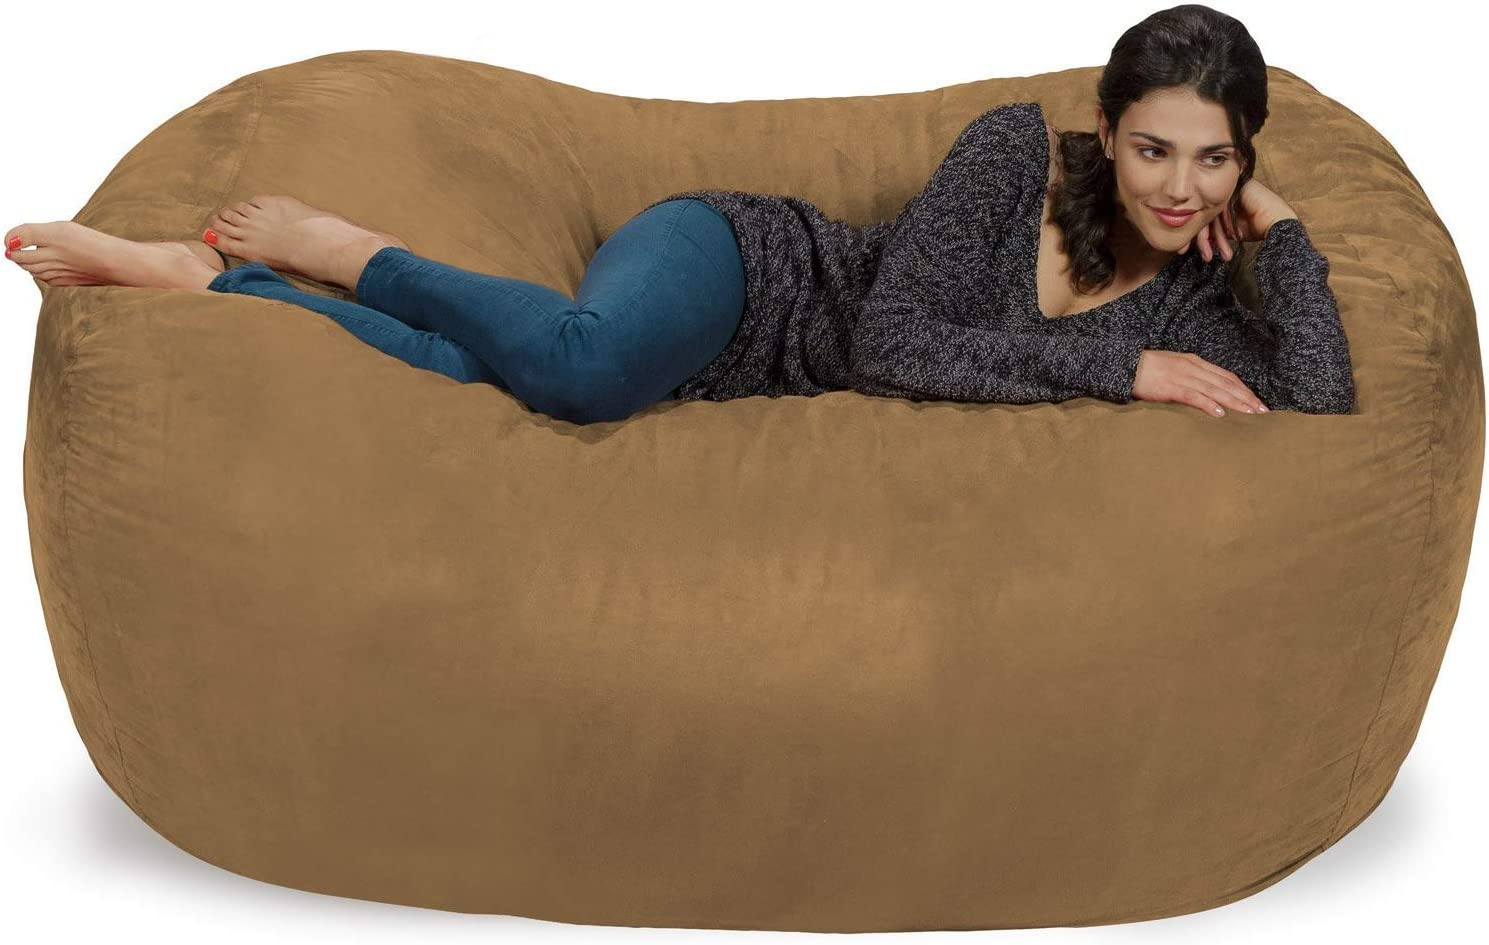 Ink Craft Bean Bag Chair Cover Only, Large Washable Furniture Bean Bag Cove, Without Bean Filling 6 Foot (tan)